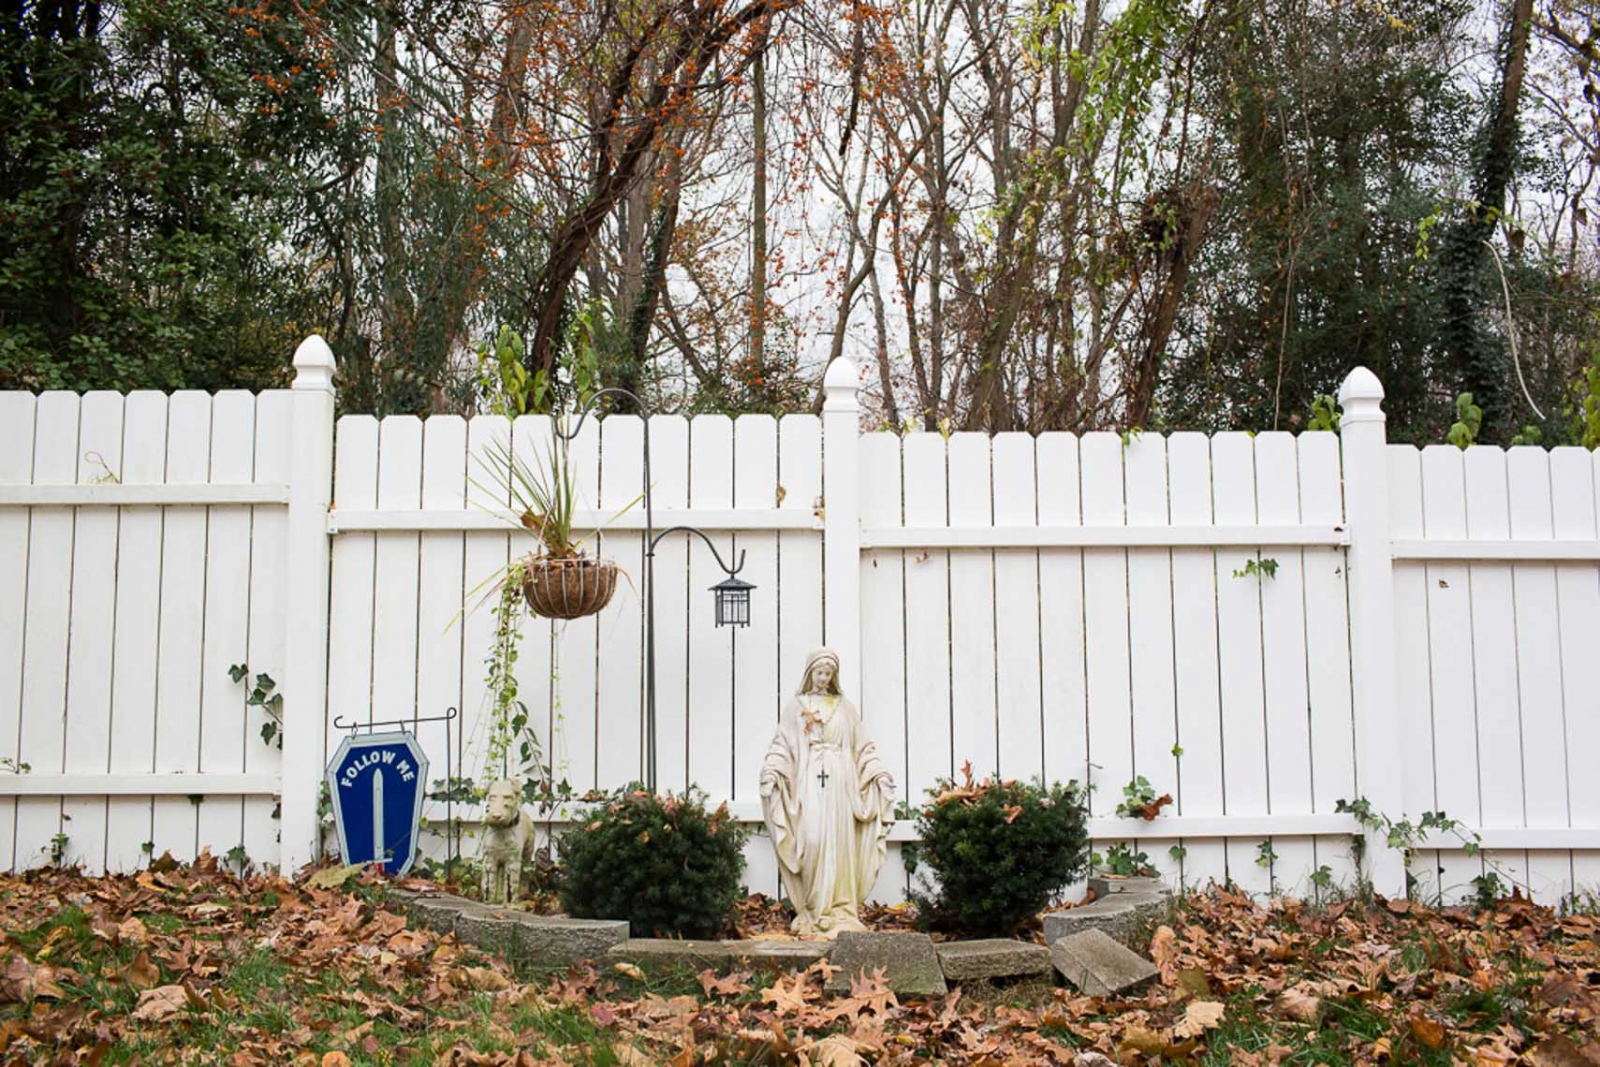 In the Kochs backyard, next to a statue of Mary, is a memorial to the family dog Keiser, Lynnes favorite. The blue sign is a symbol of the infantry. For CNN Digital